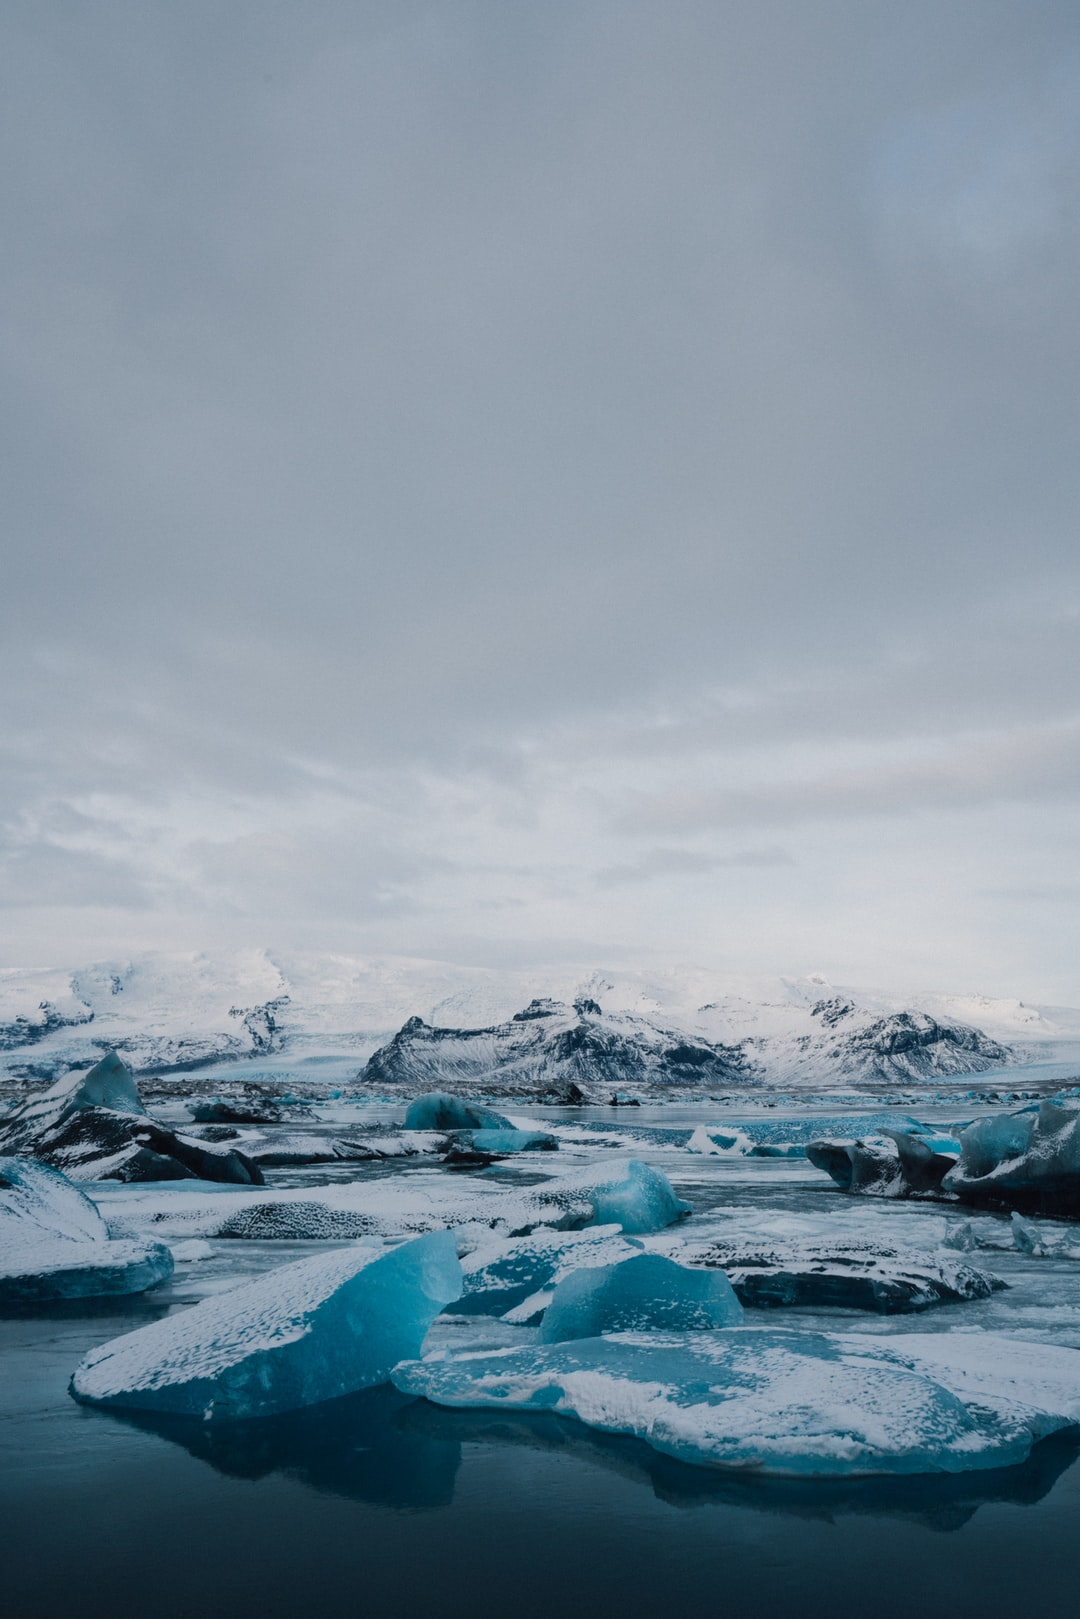 ice on body of water under cloudy sky